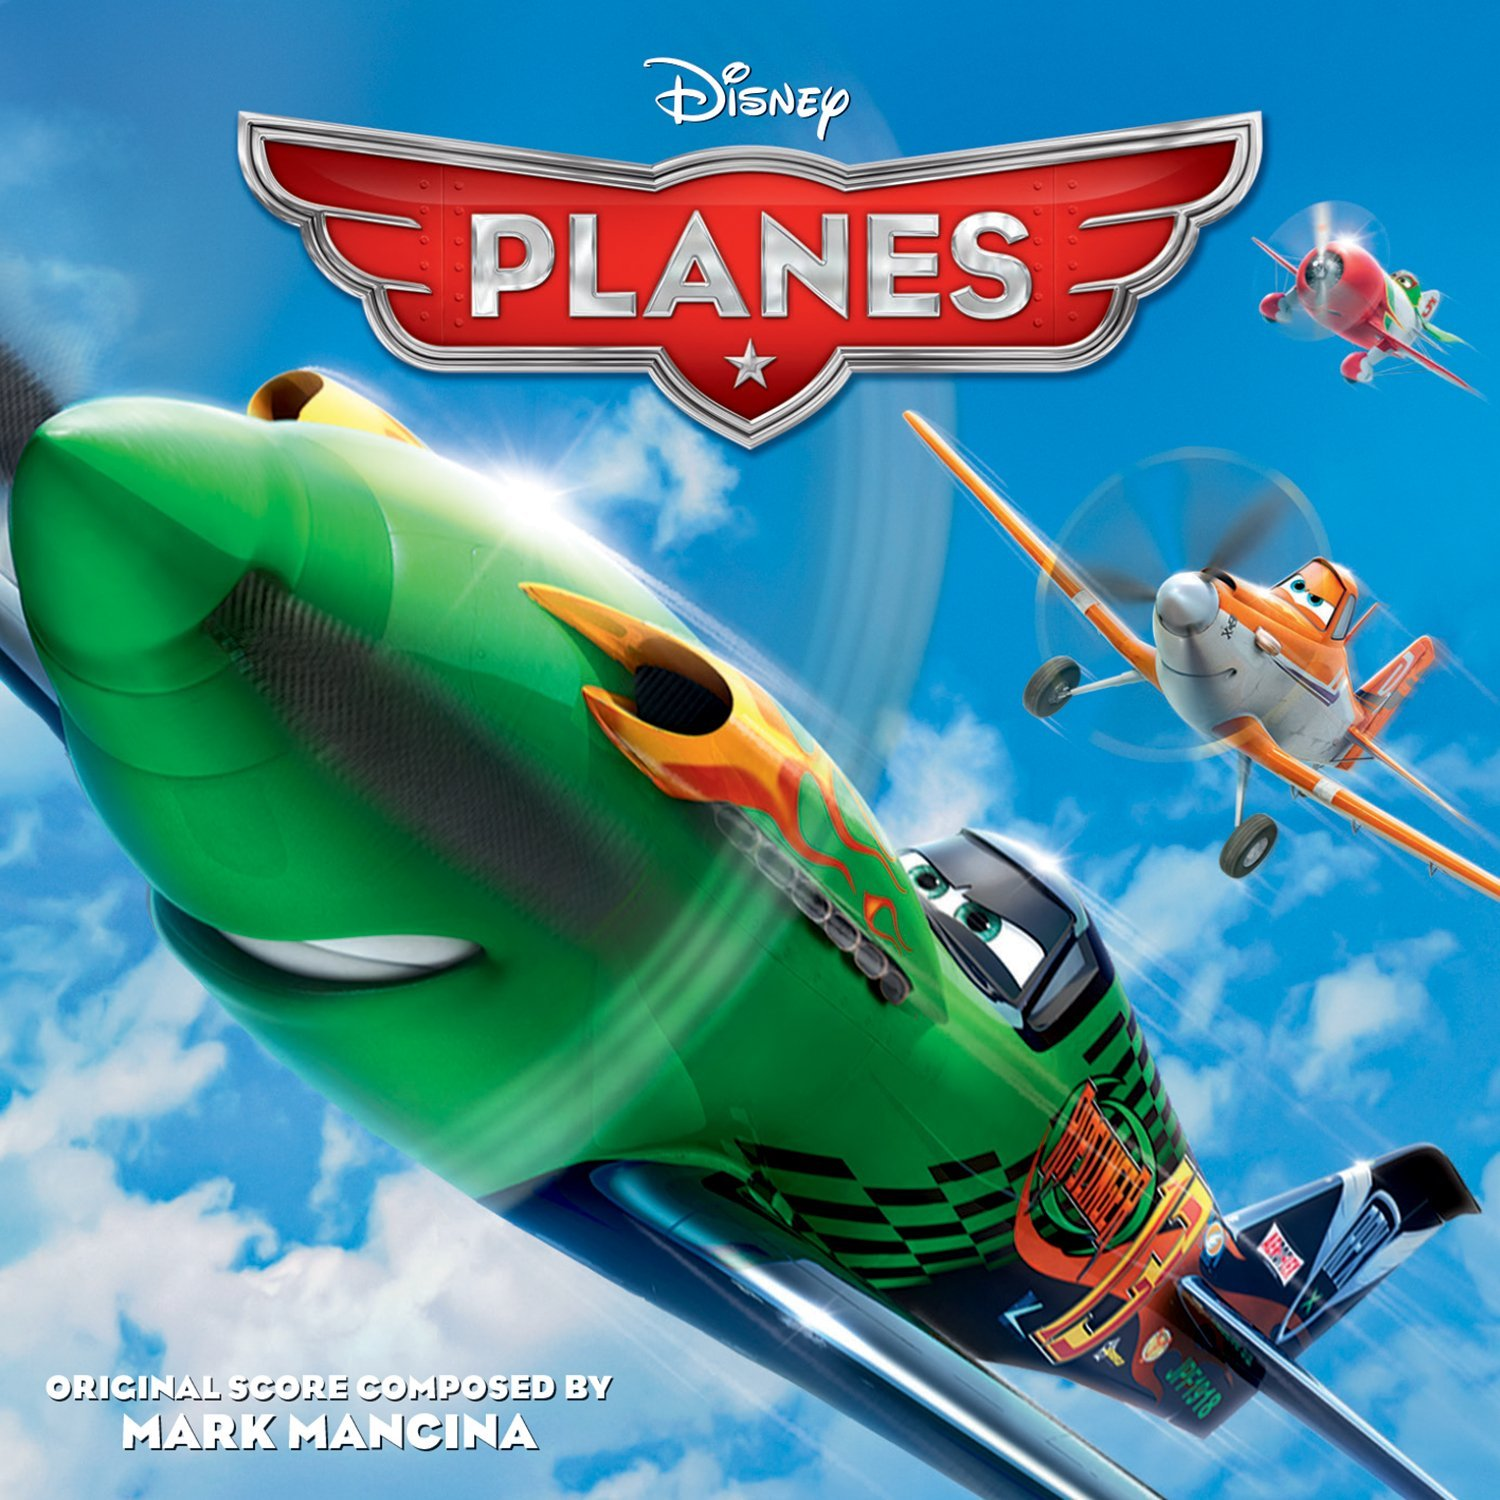 disney plane wii with Planes  Soundtrack on American Idol Season 10 Top 24 Is Happening likewise Planes Double Feature 2013 2014 R1 Custom Blu Ray Cover besides 74967 together with Team also Top 25 Game Boy Advance Games Of All Time.